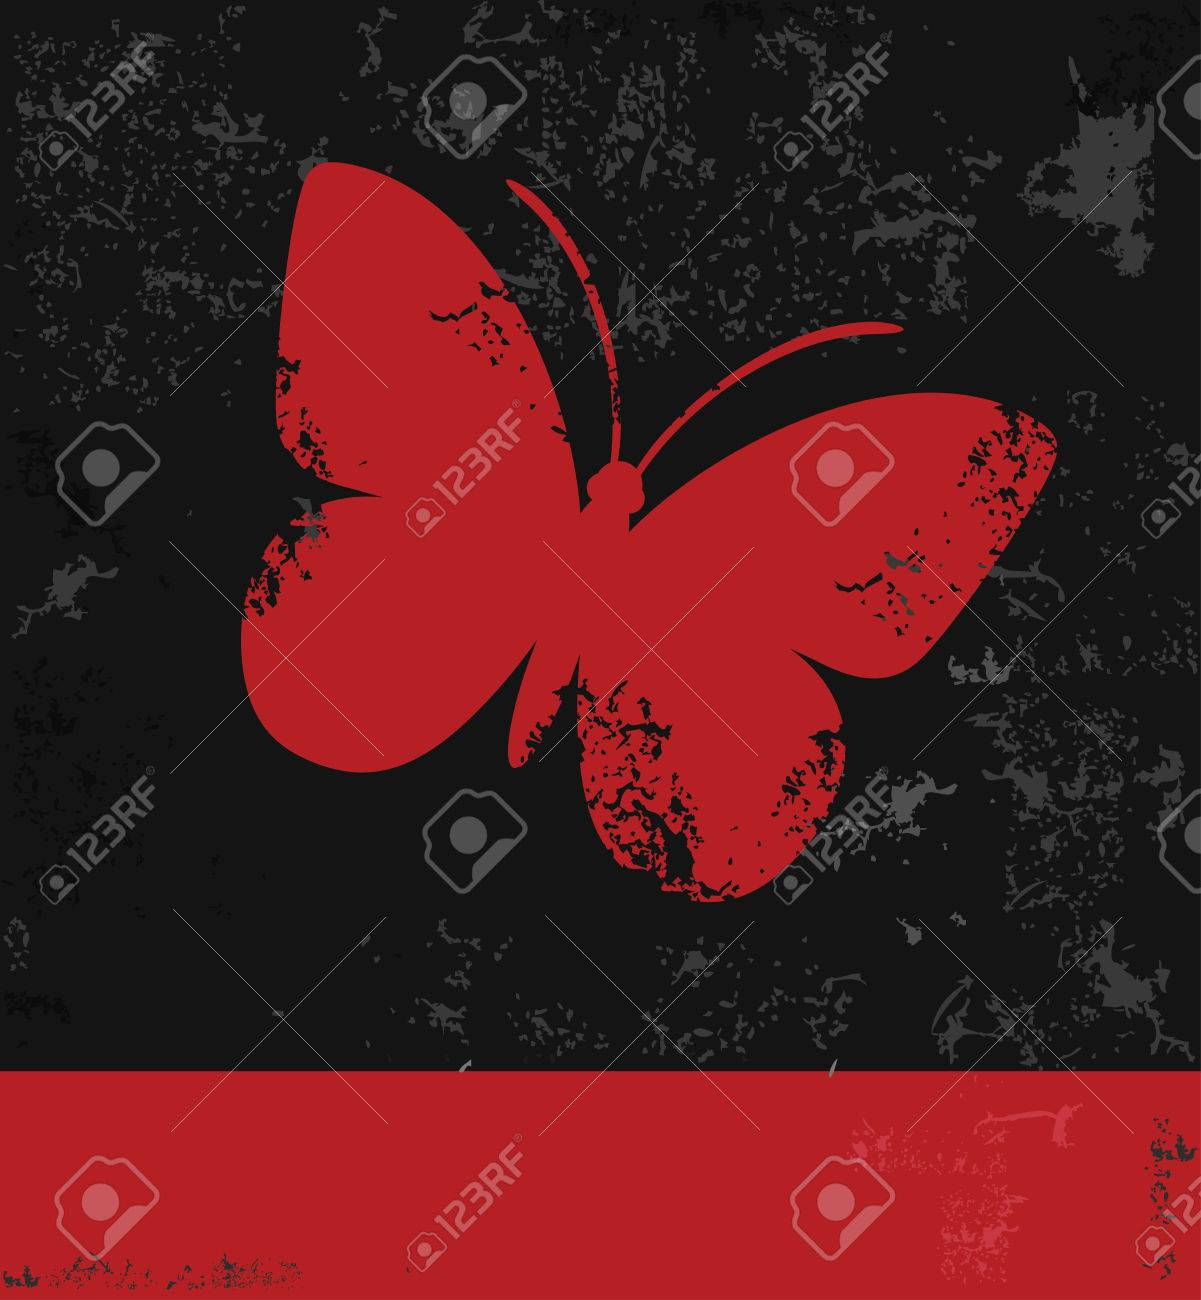 Butterfly symbolgrunge design royalty free cliparts vectors and butterfly symbolgrunge design stock vector 29310136 biocorpaavc Images